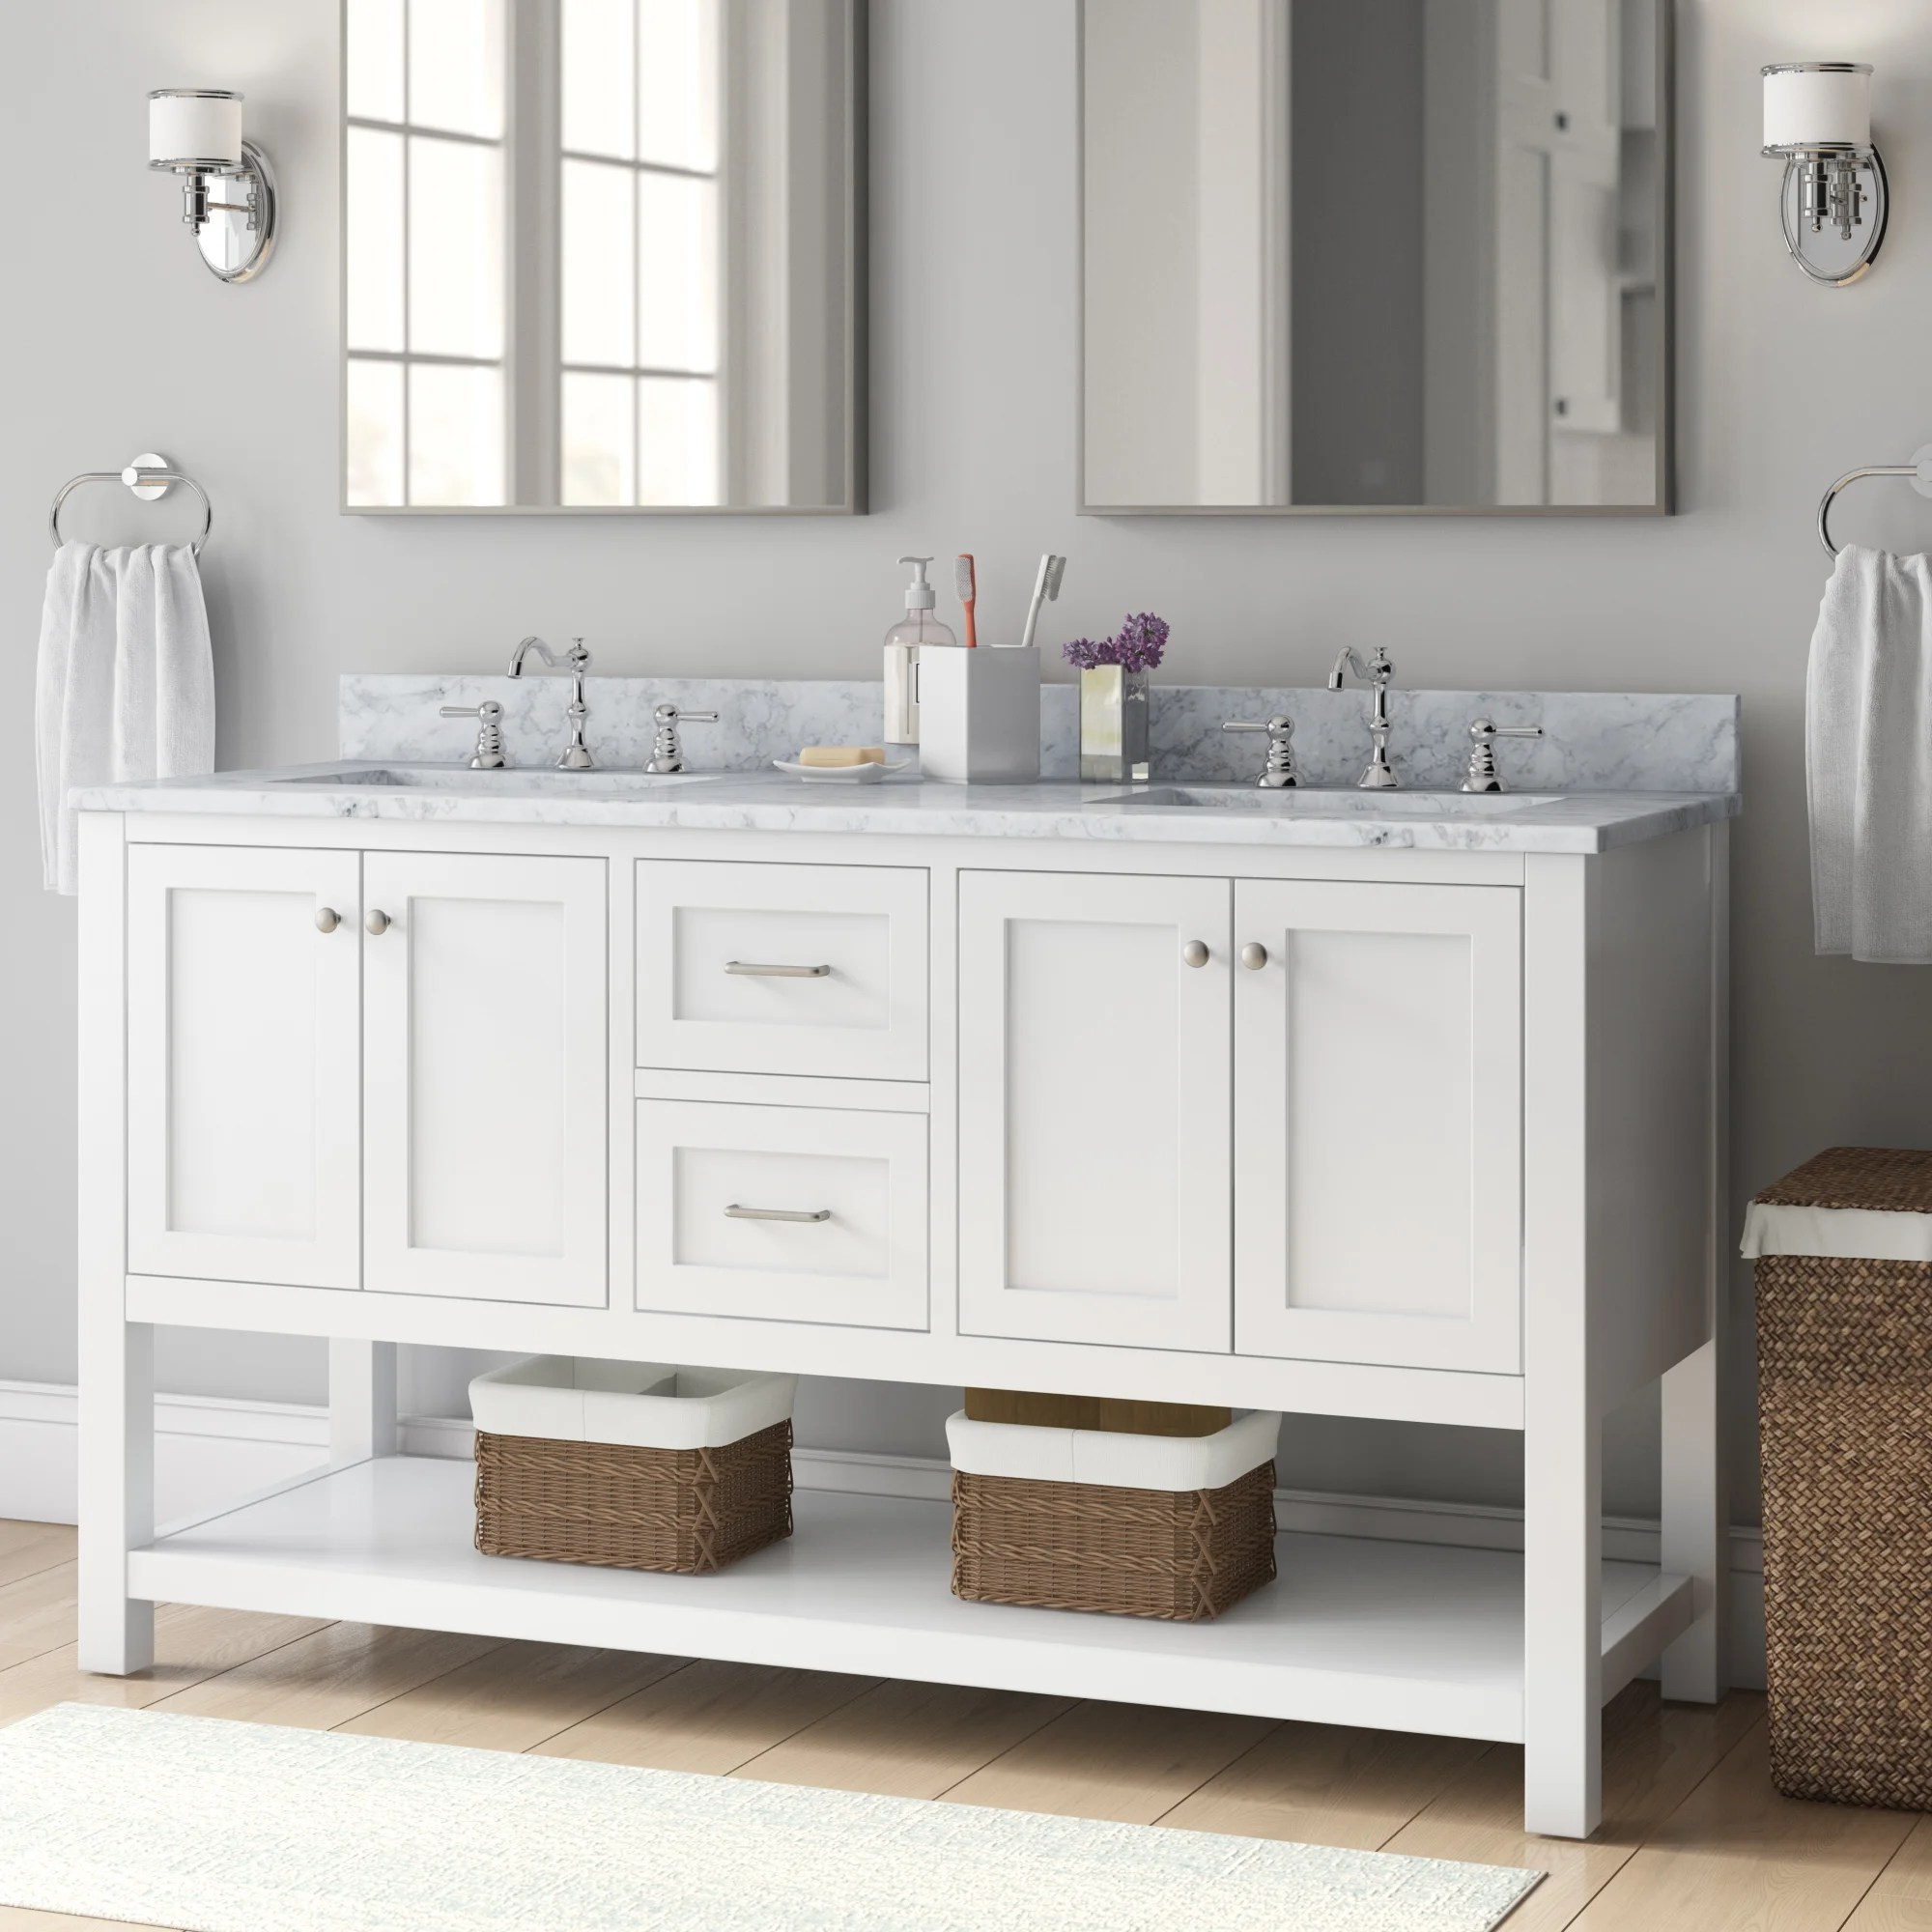 Charlton Home Ensemble De Meuble Lavabo De Salle De Bain Double 60 Po Daughtry Et Commentaires Wayfair Ca